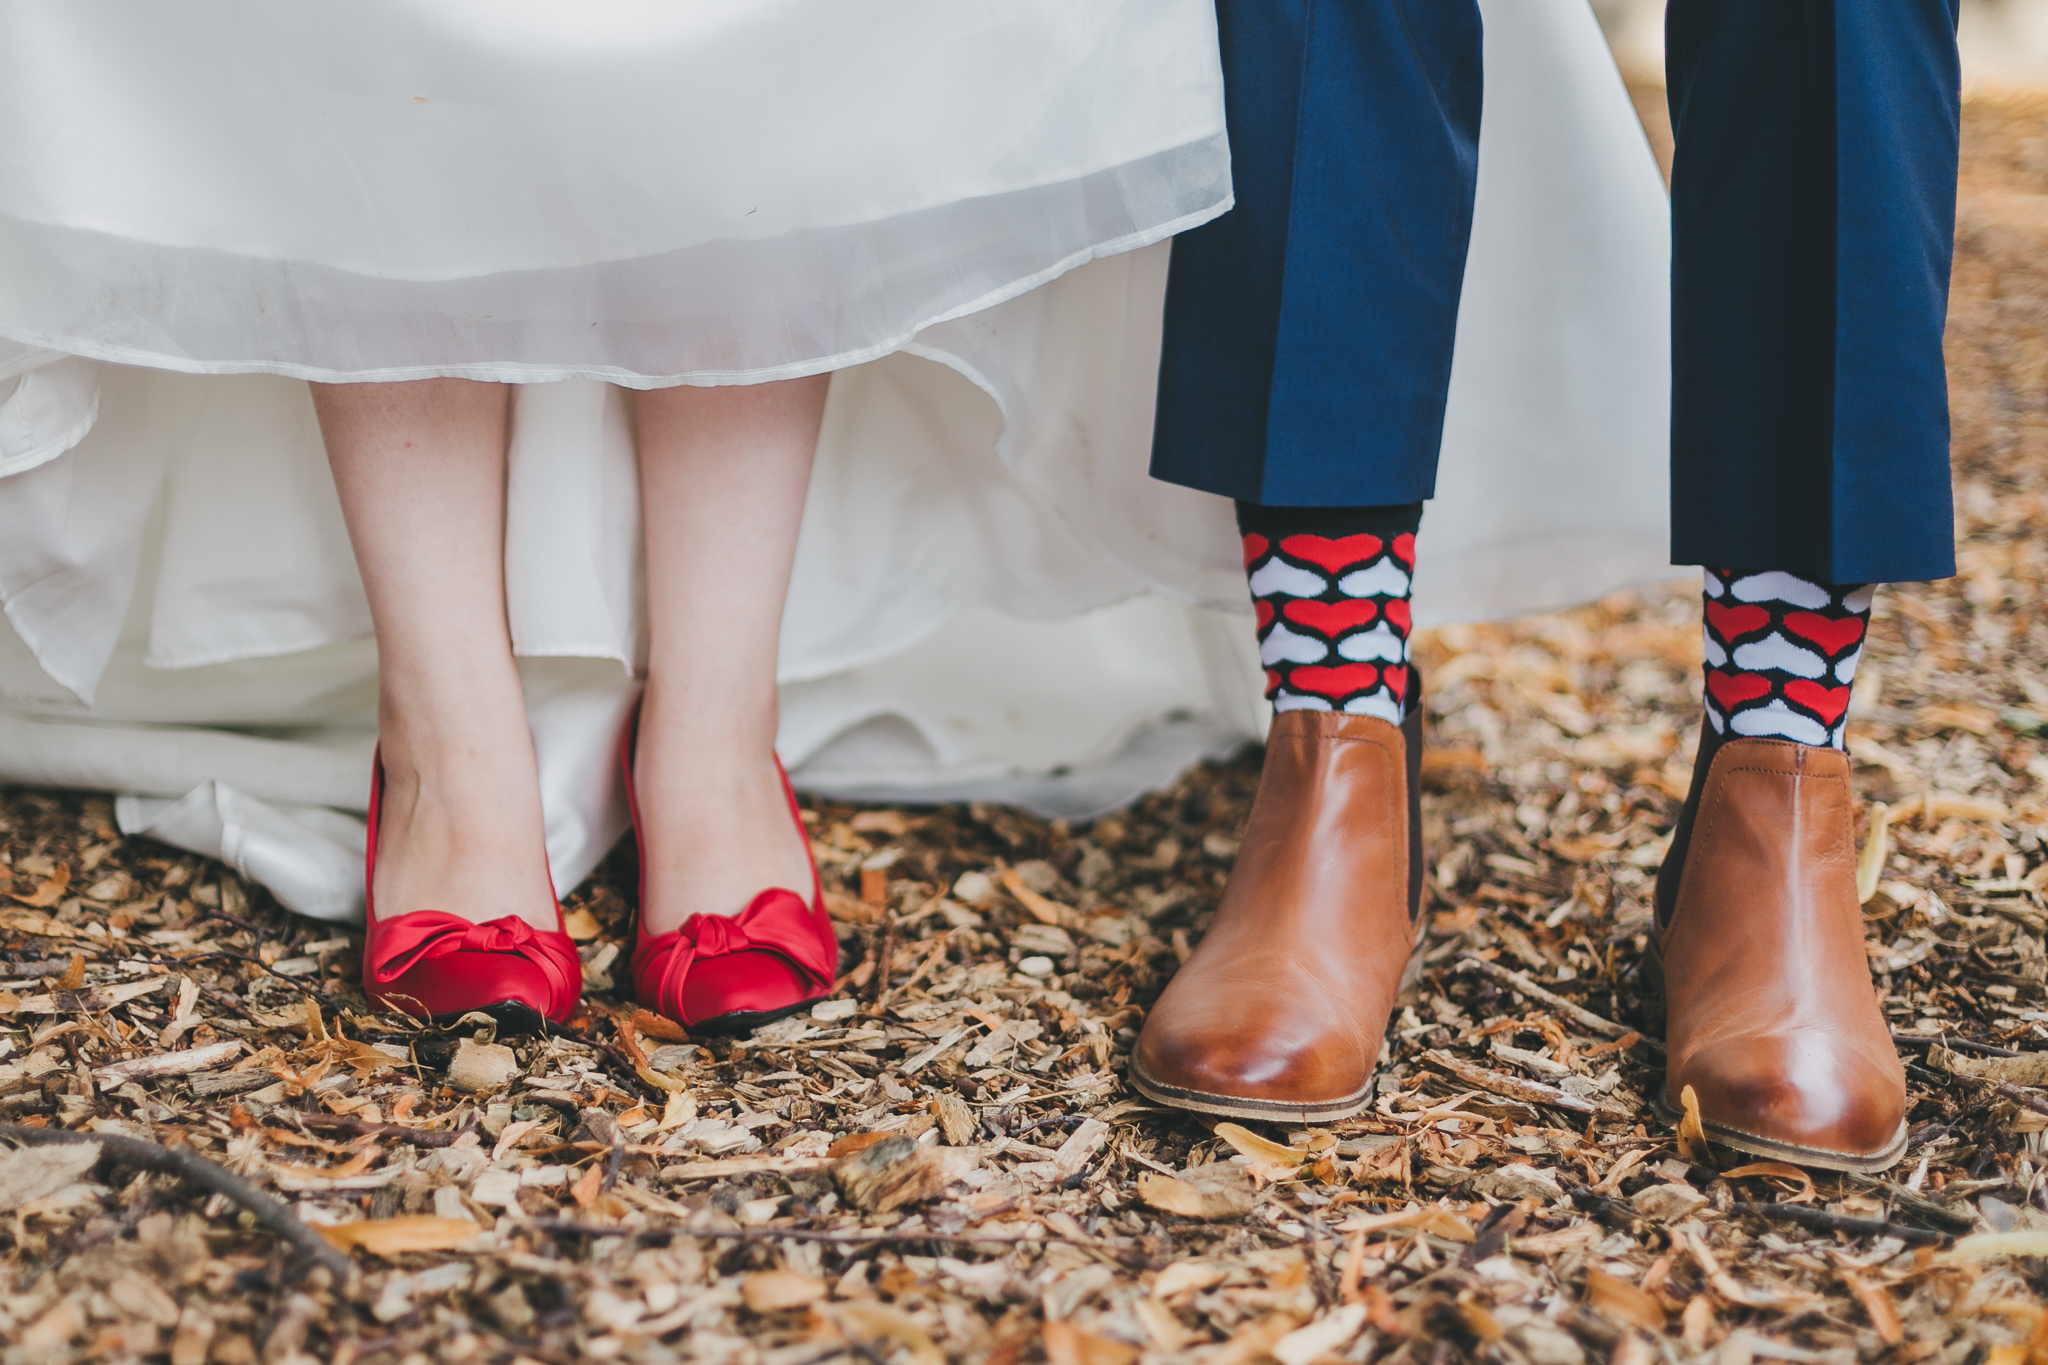 Bride and grooms legs showing red shoes and red heart print socks